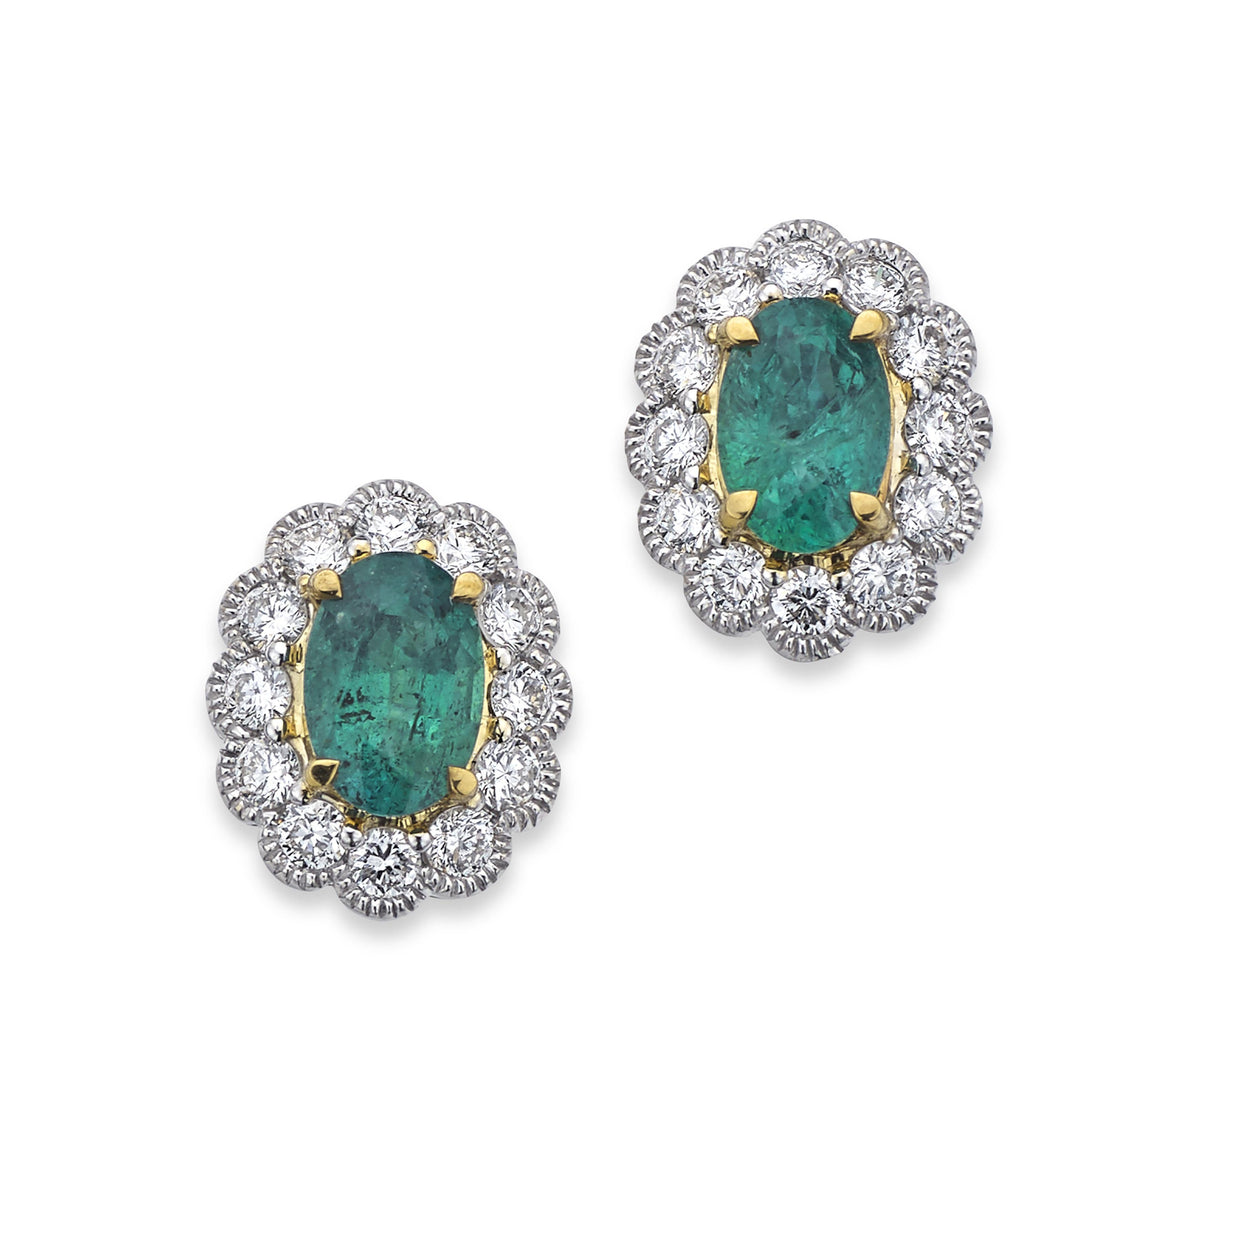 18ct Emerald & Diamond Cluster Earrings - Hamilton & Inches